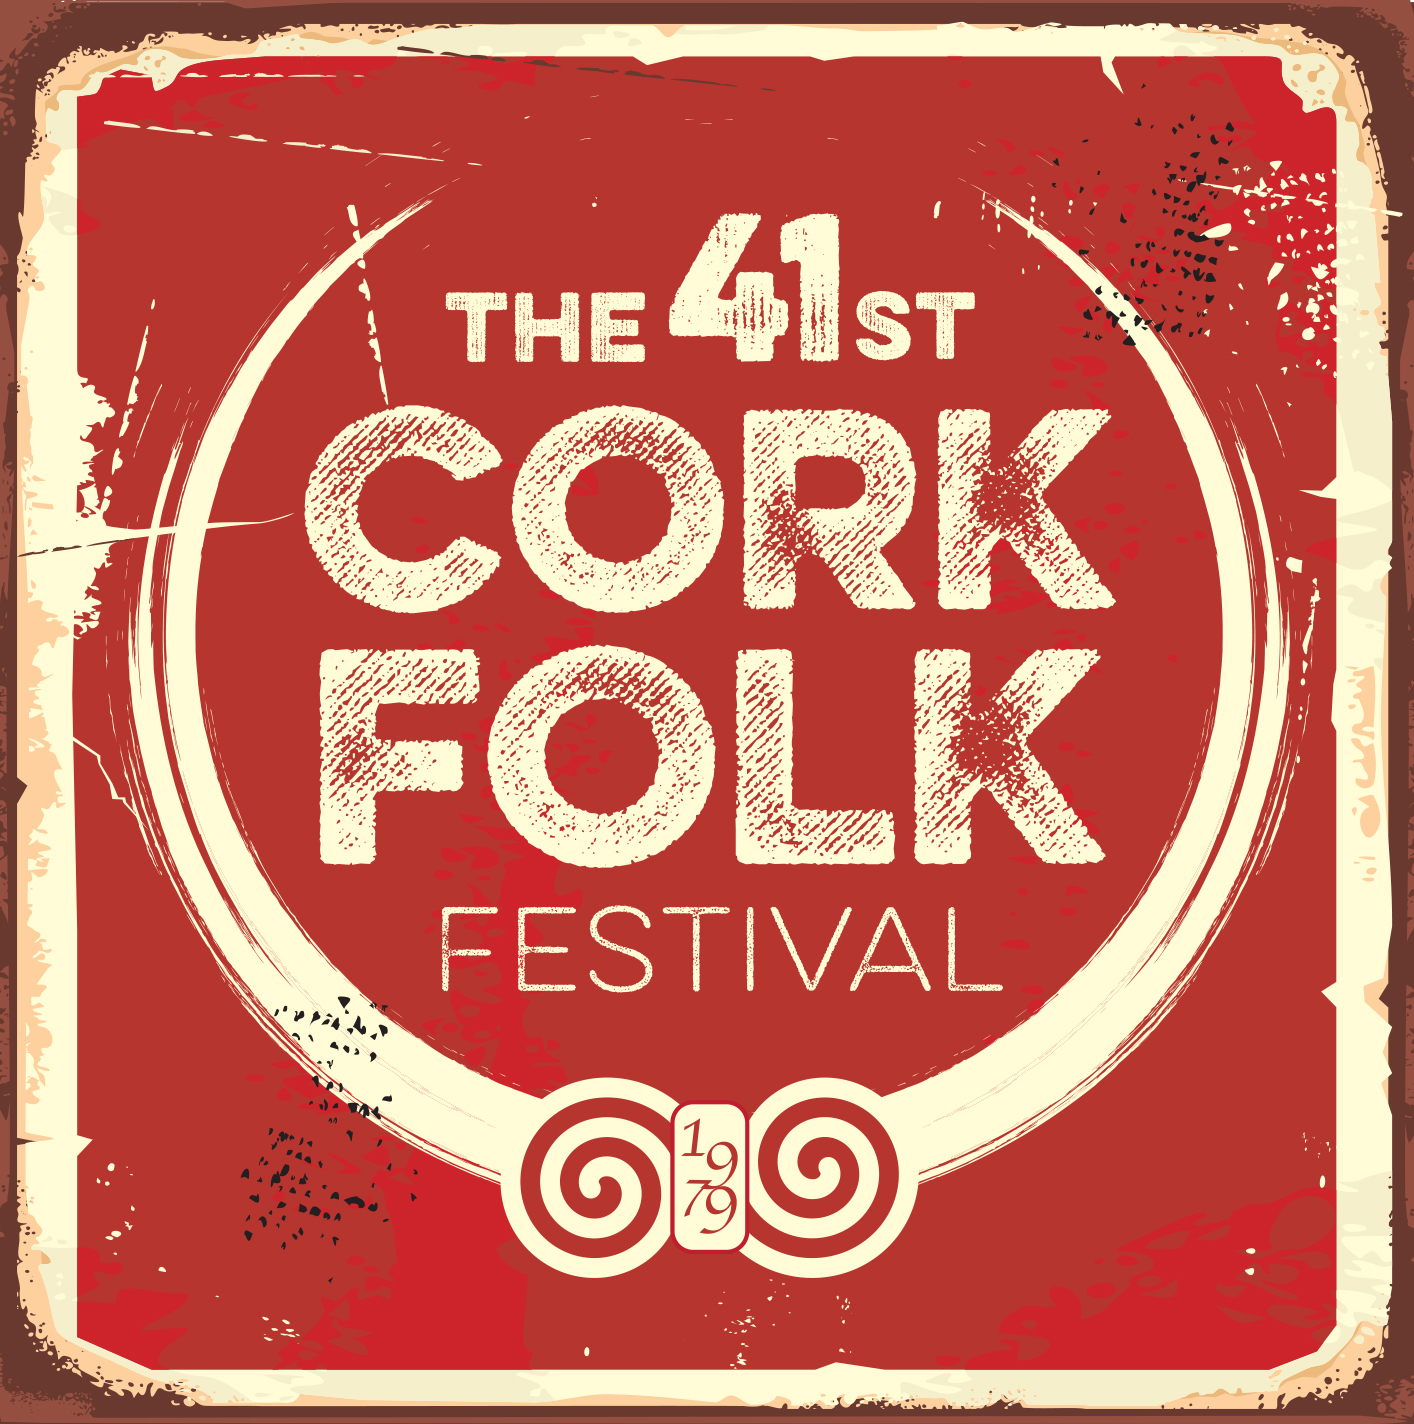 Cork Folk Festival - Cork, Ireland  30 september -4th October 2020